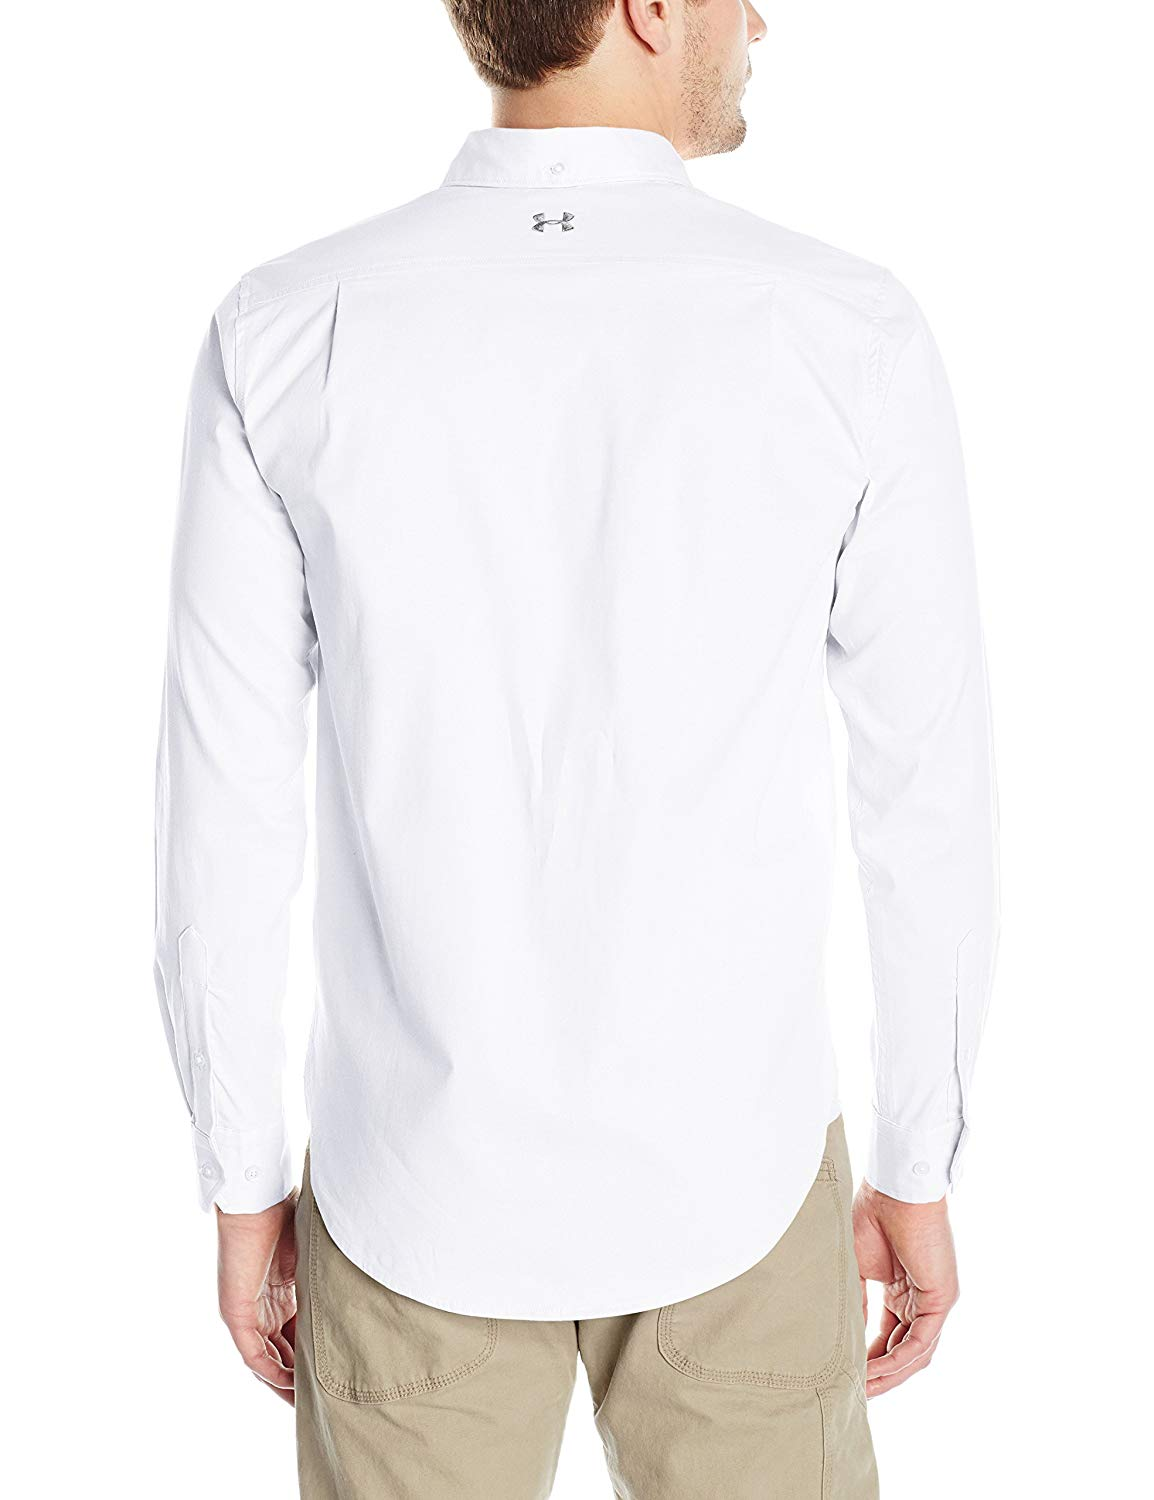 UnderArmour Spring Performance Oxford WHITE